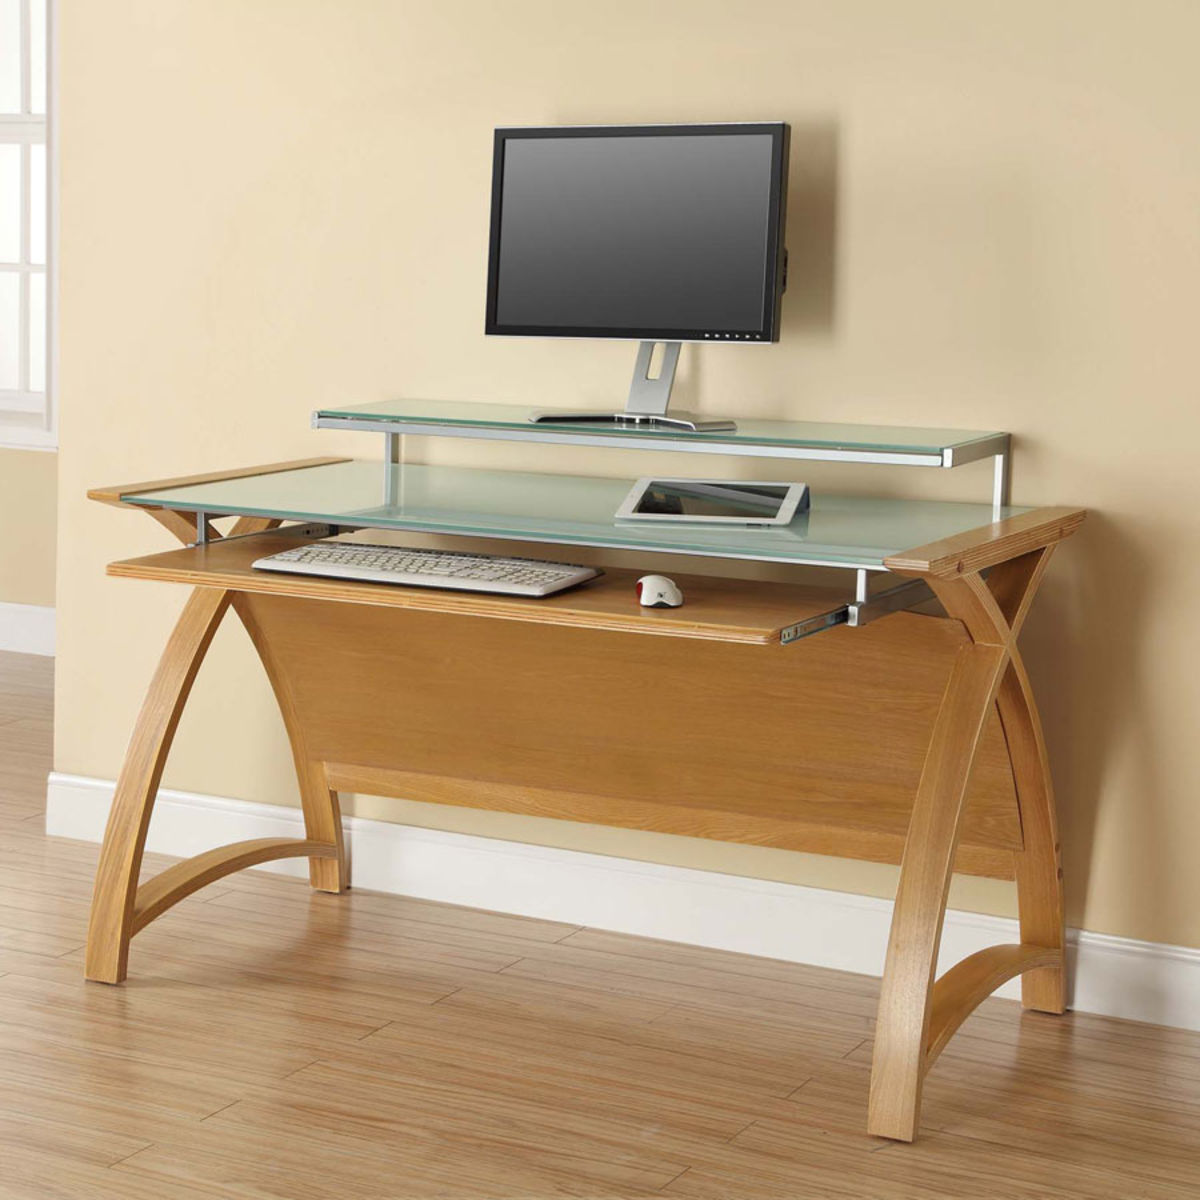 Home Office Furniture At Wooden Furniture Store: Curve Home Office Large Oak Desk (130cm) Was £395.00 Now £